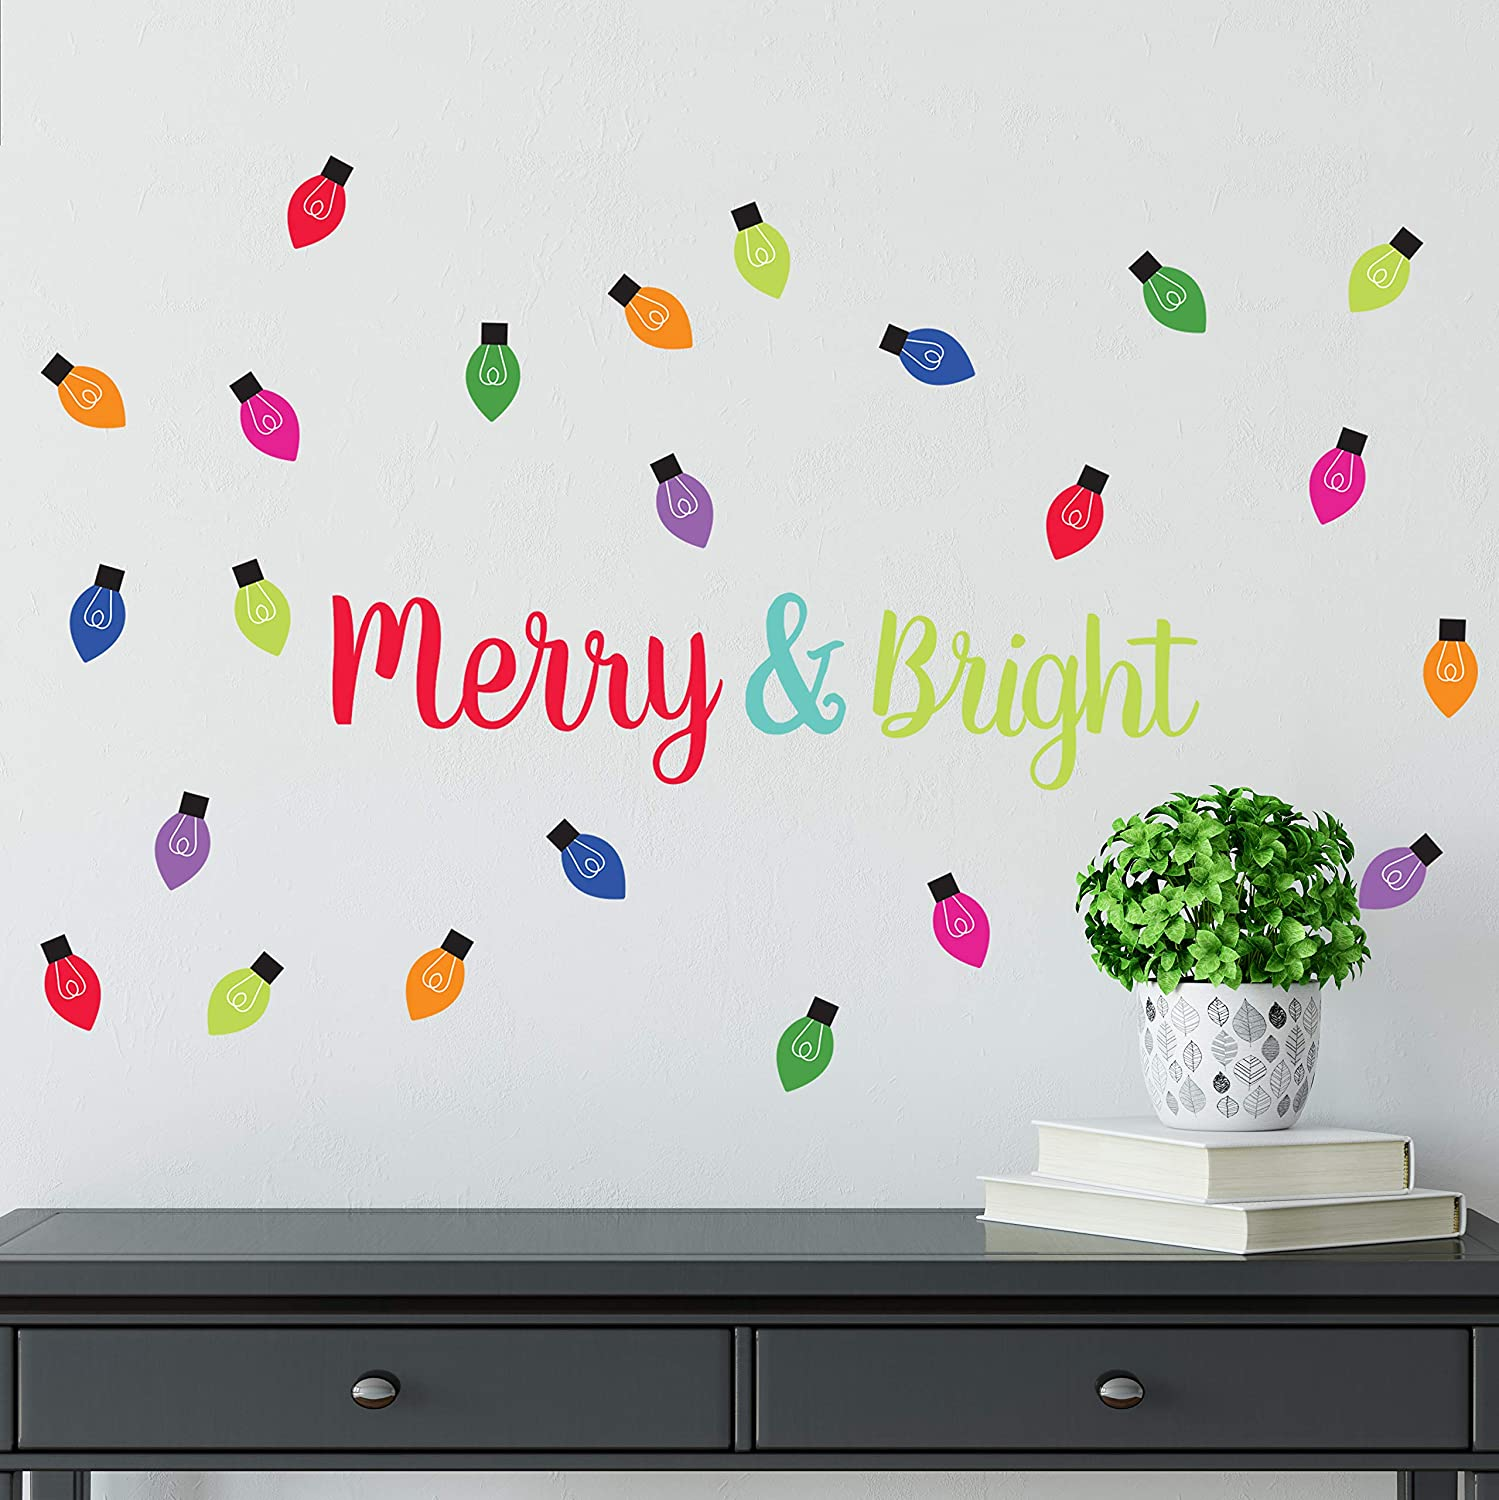 Christmas Wall Decal - Holiday Merry and Bright Peel and Stick Winter Wall Stickers